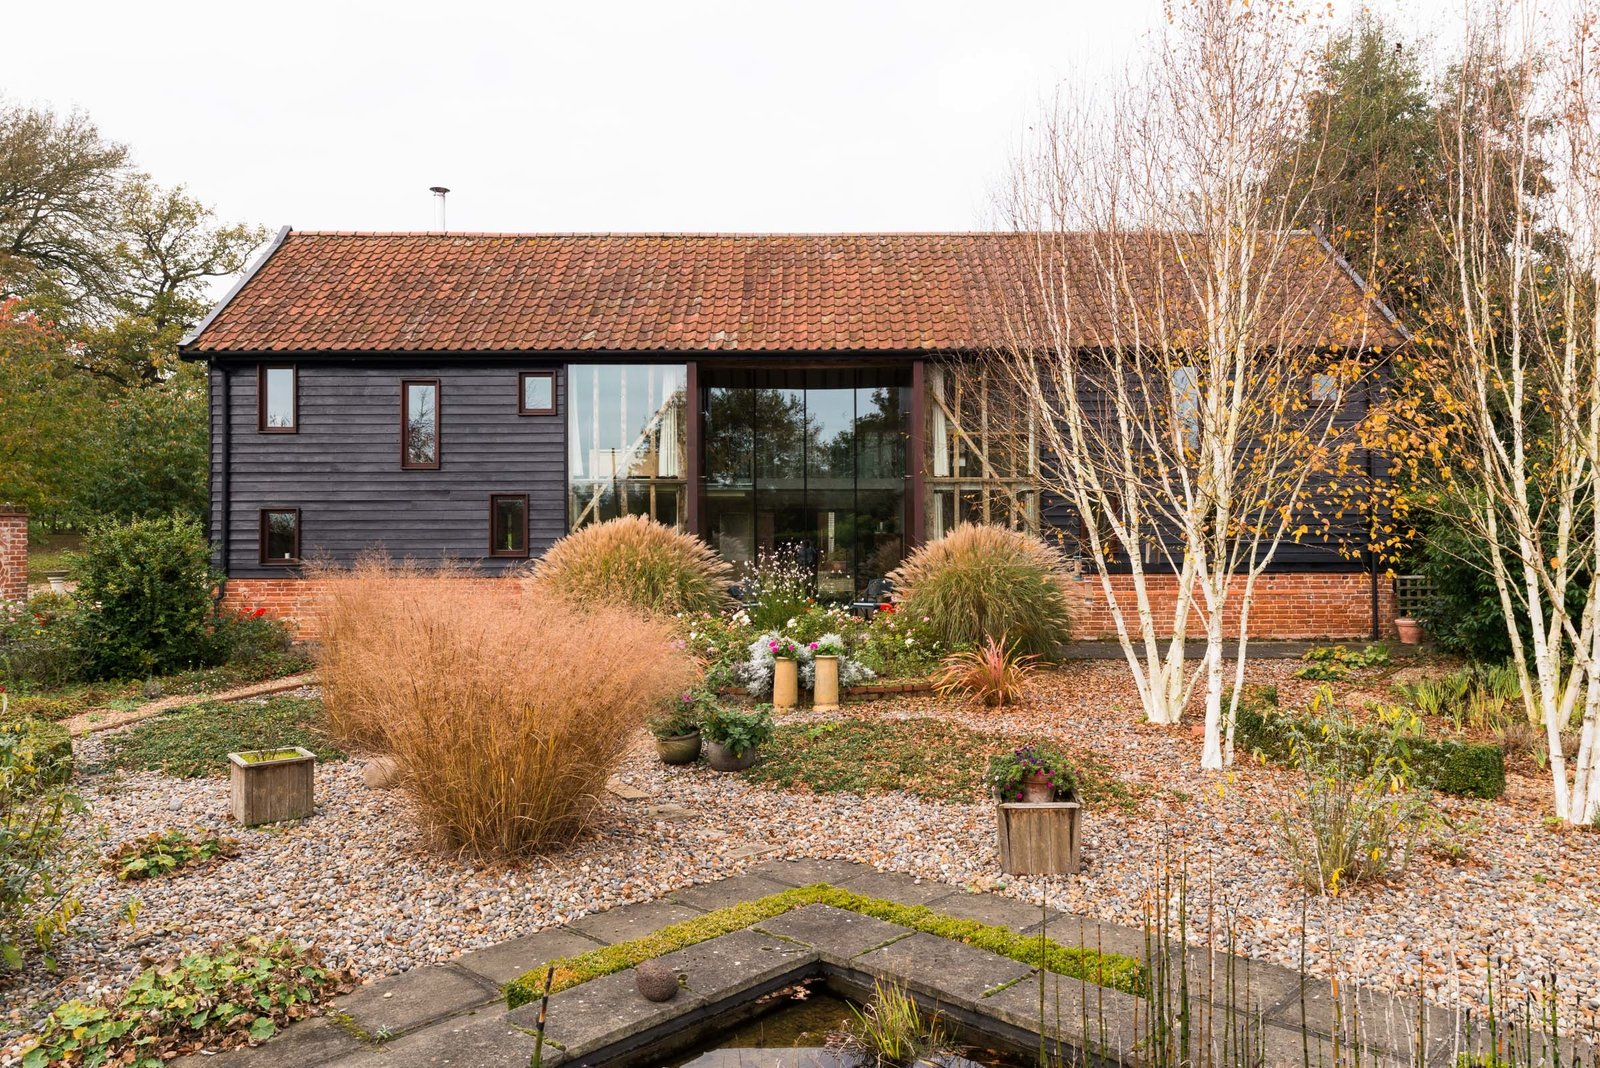 Exterior, Farmhouse, Brick, Wood, Gable, and Tile Additional glazing was added to the structure to increase the natural light.  Best Exterior Wood Gable Brick Photos from This Spectacular Suffolk Barn Conversion Hits the Market at $1.26M